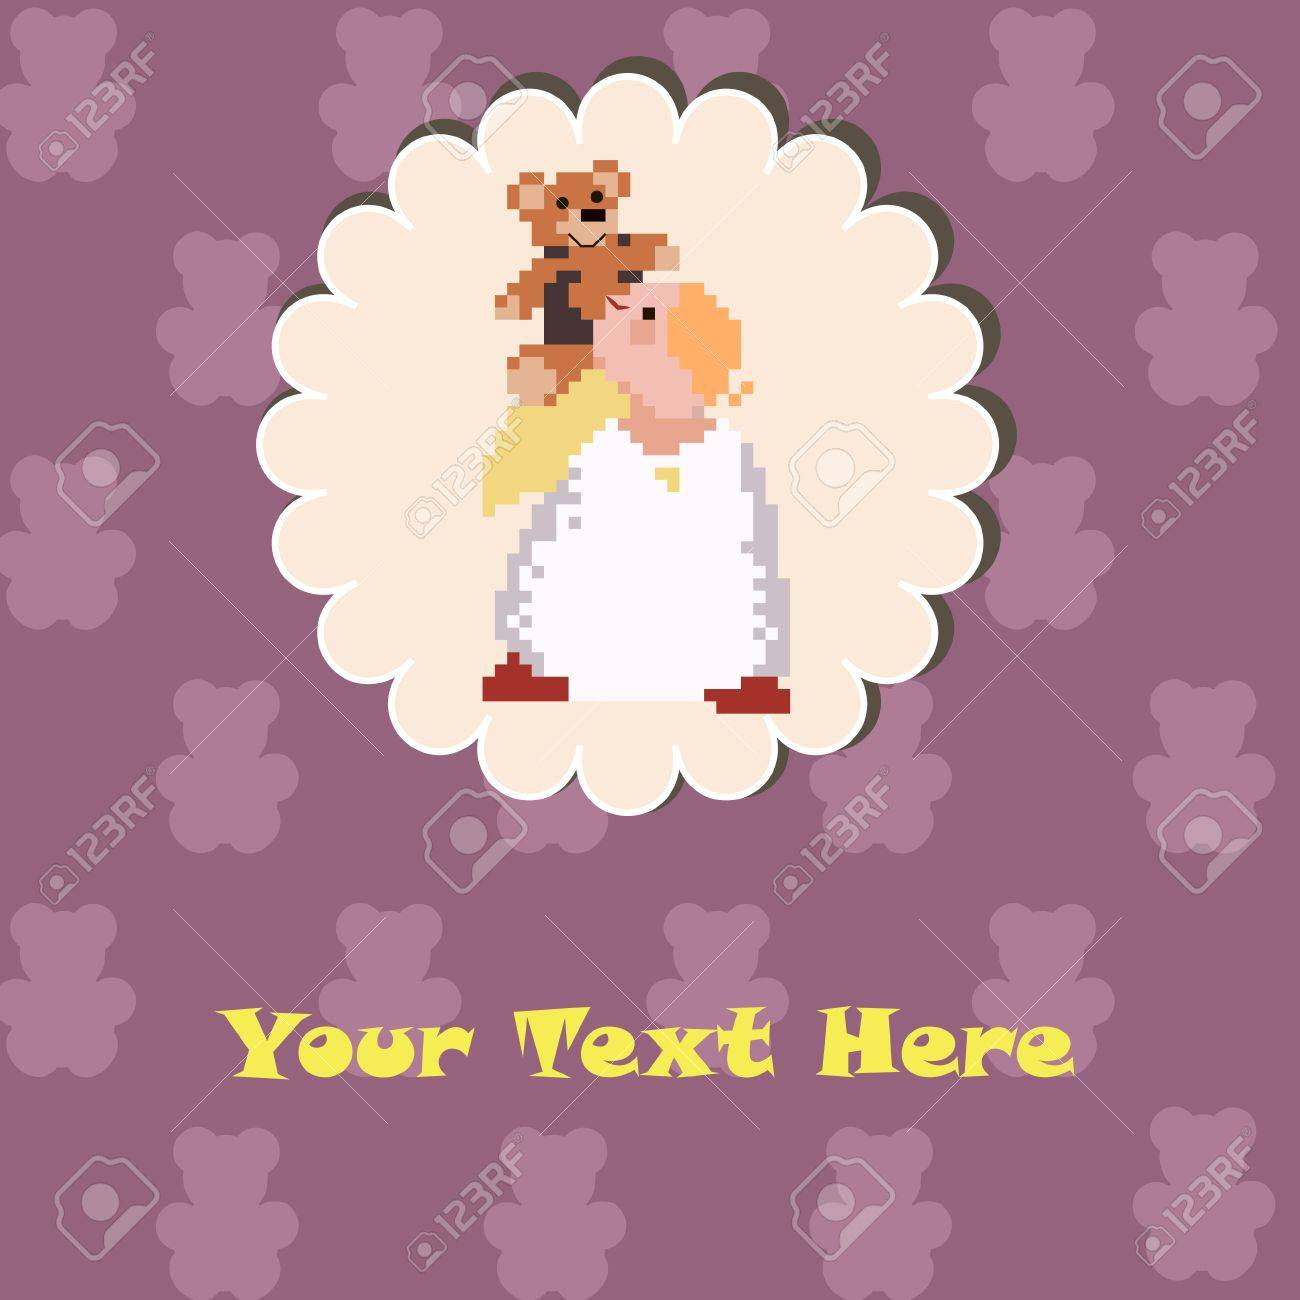 Cute Angel with a Teddy Bear on the purple background Stock Vector - 17094465